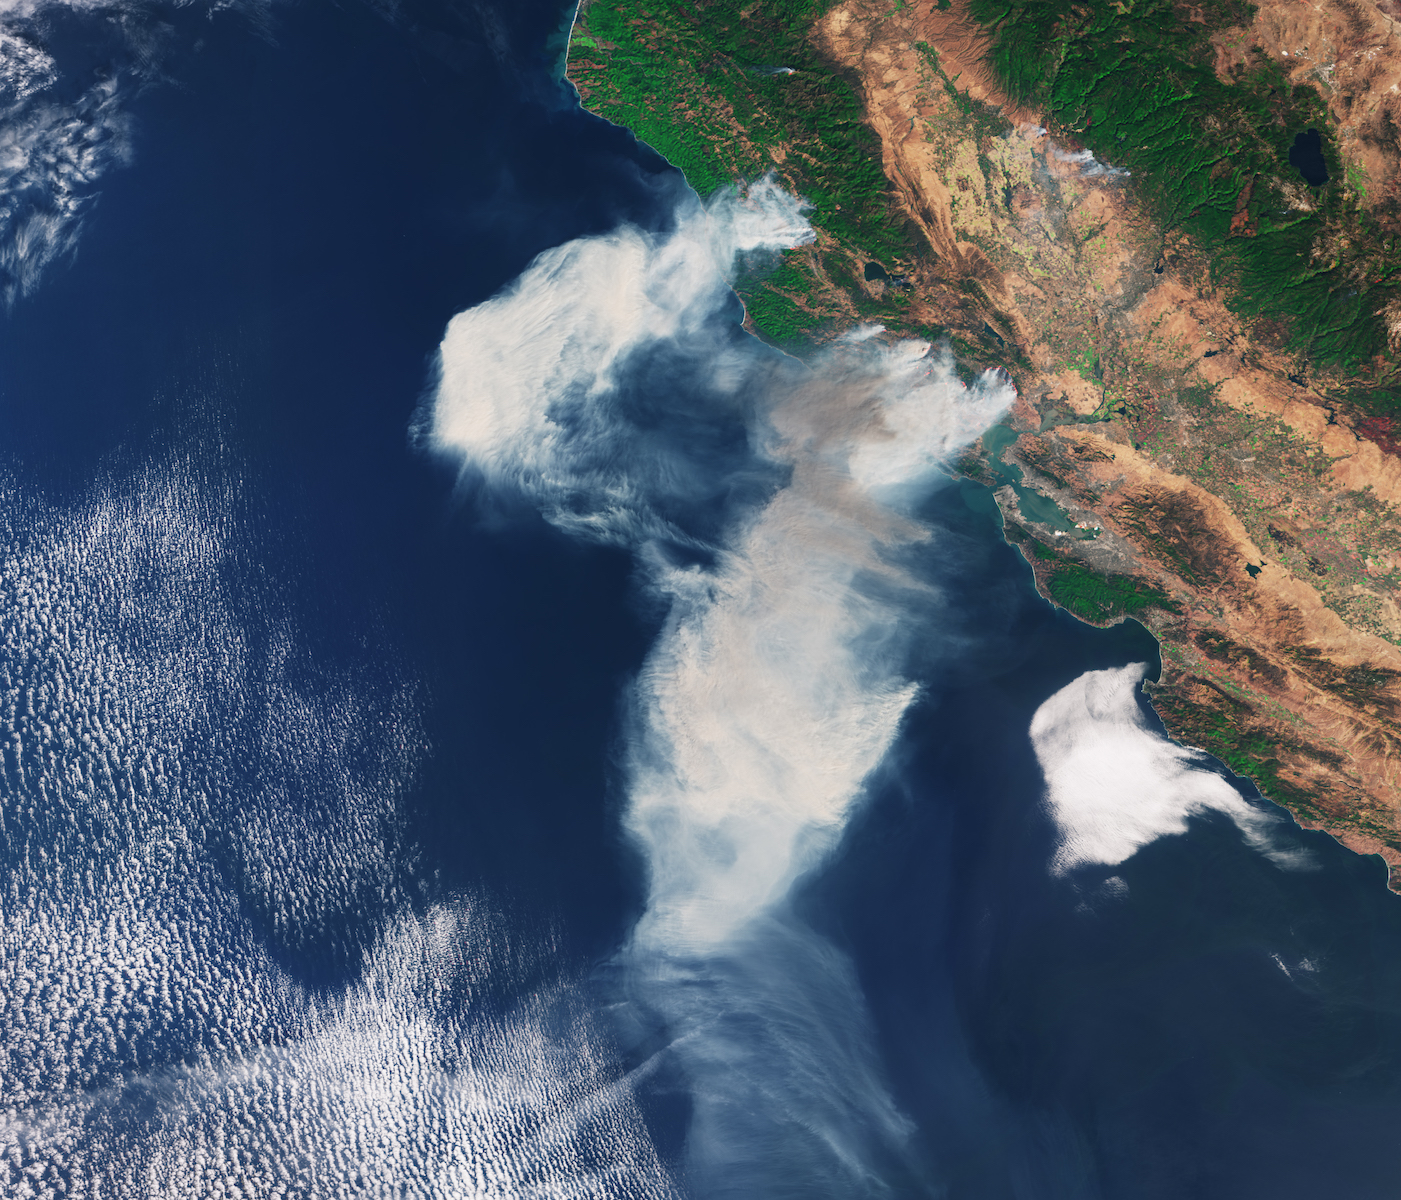 Today's Image of the Day features a look at smoke from the northern California wildfires that have been ravaging wine country.